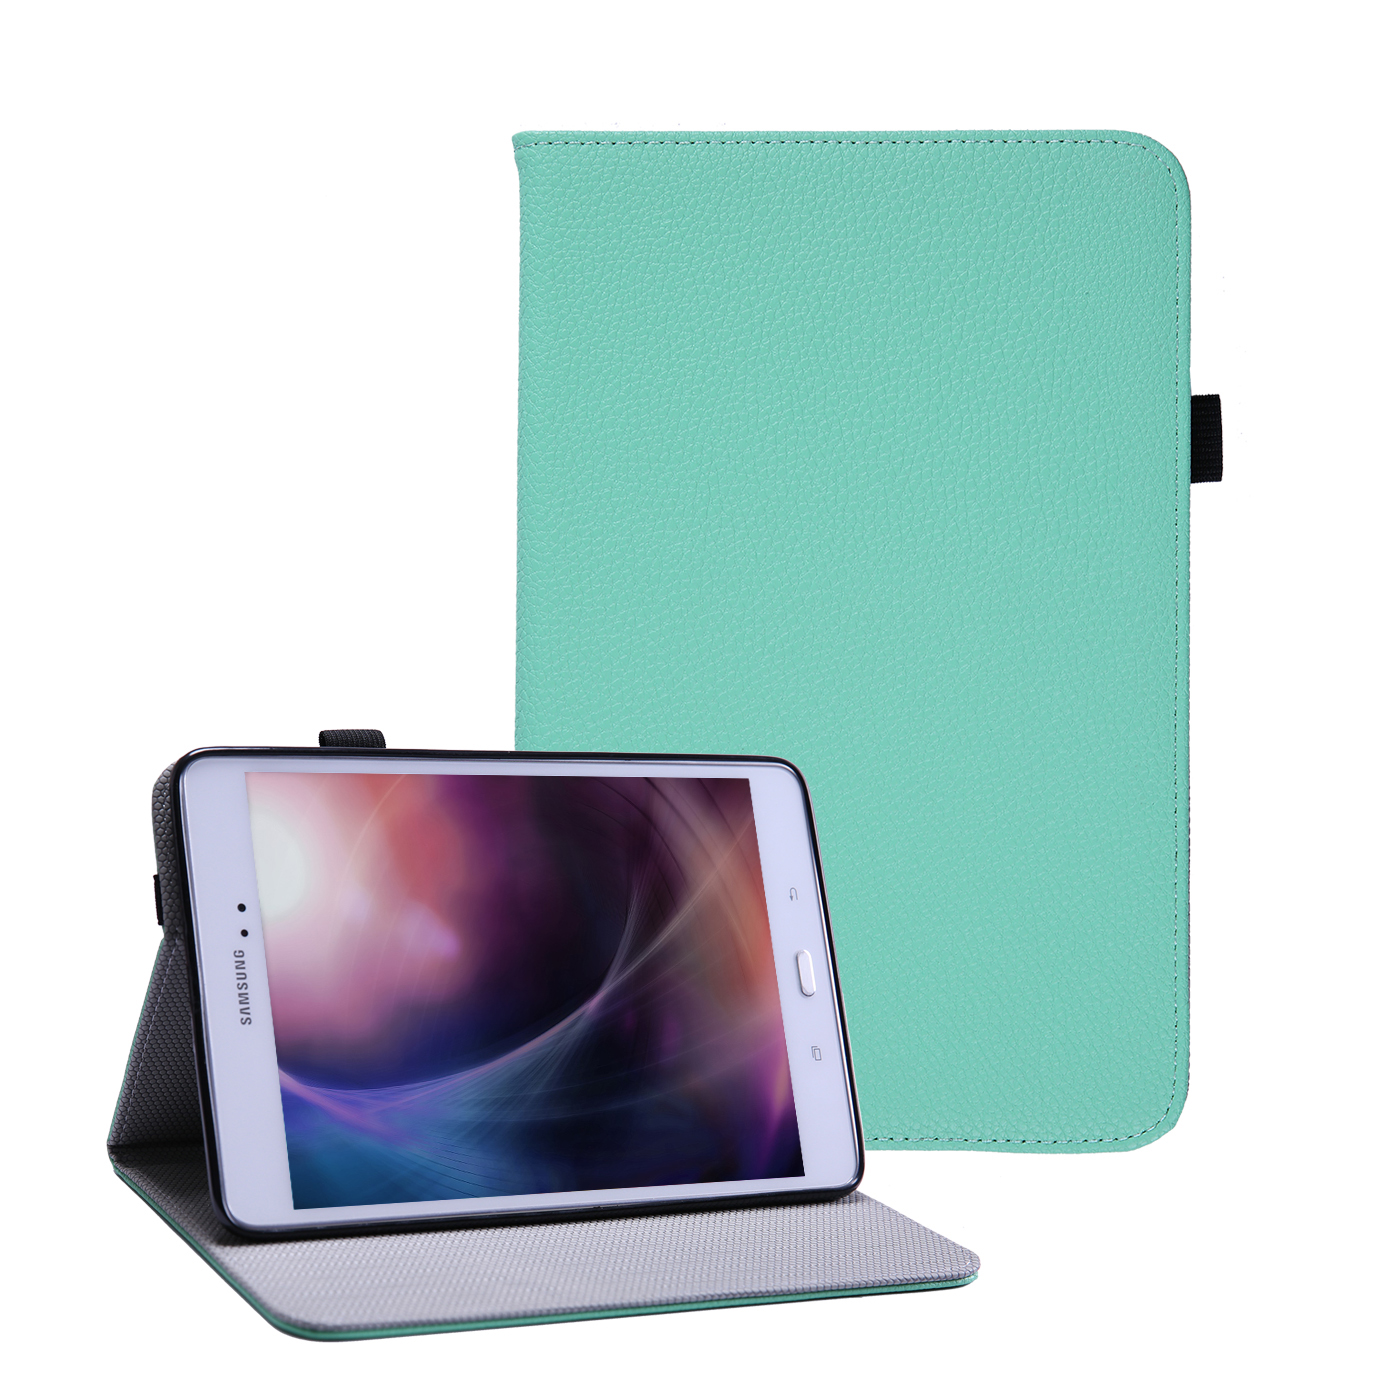 HDE Galaxy Tab A 8.0 Leather Case - Vintage Folio Cover Case Multi-Angle Viewing Stand for Samsung Galaxy Tab A 8.0 Tablet (Seafoam Green)